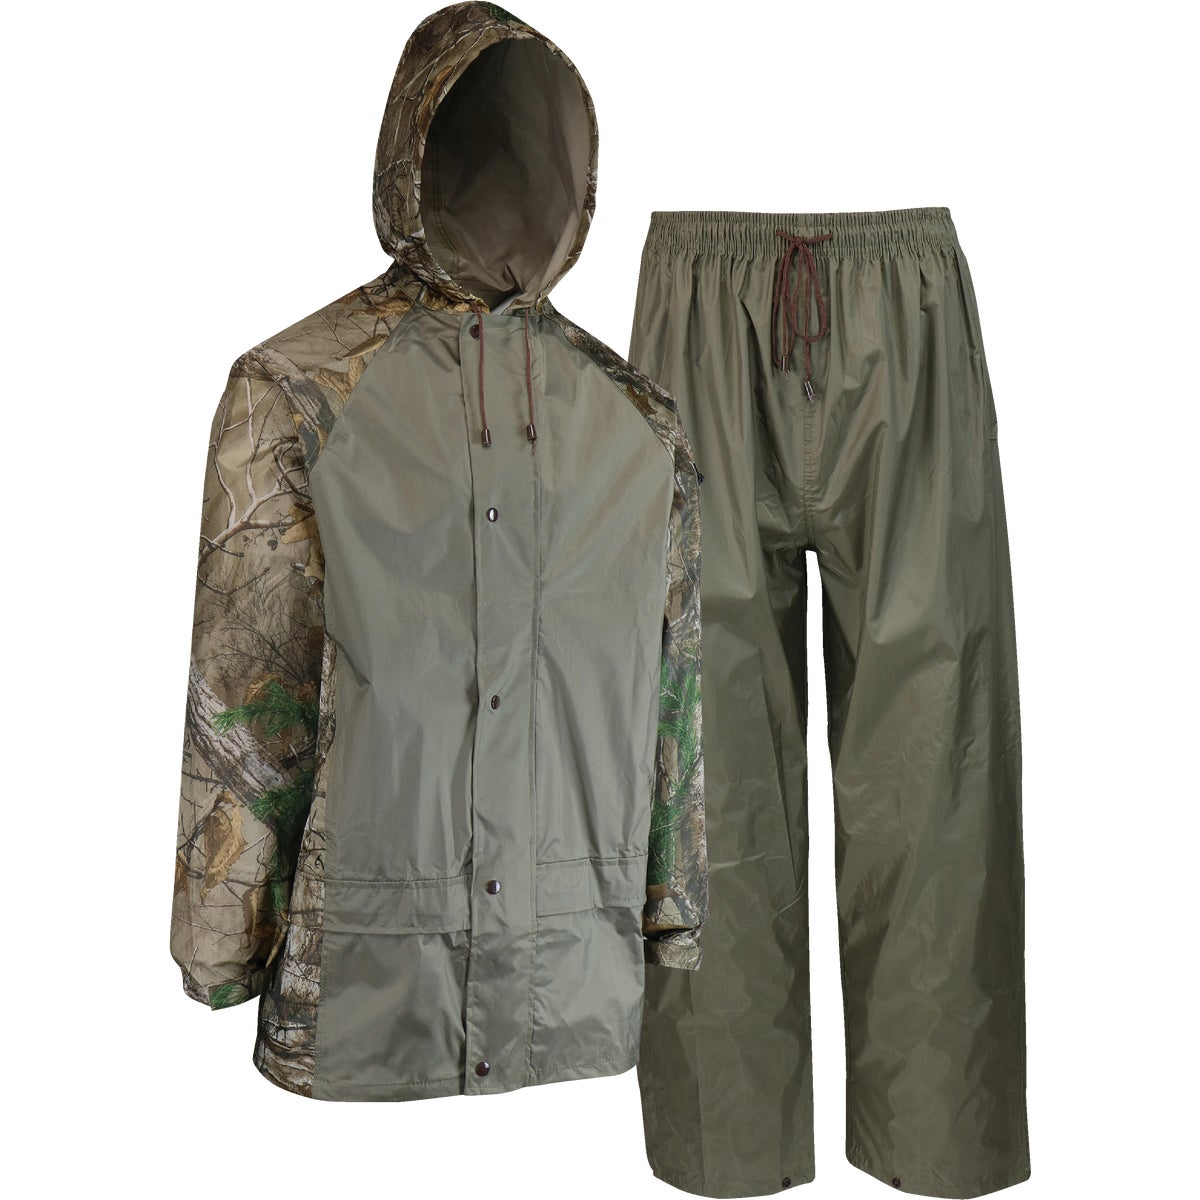 2X 2PC CAMO RAIN SUIT - R1802X by Custom Leathercraft